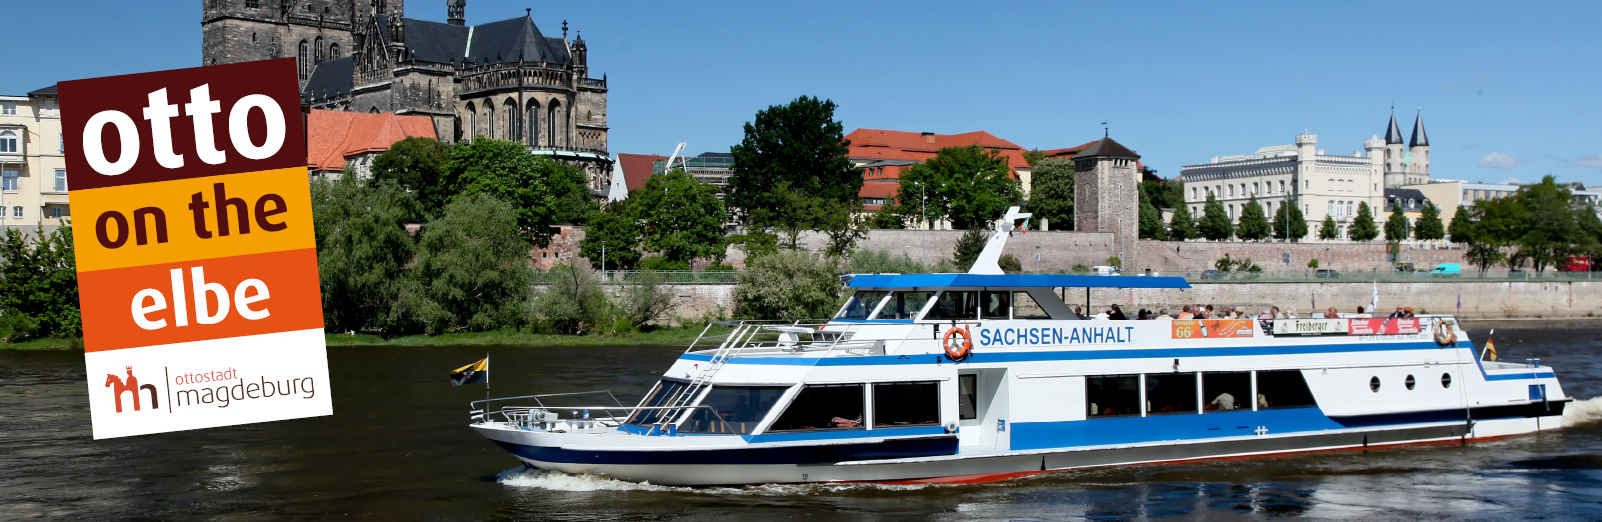 Header englisch - Wasserwandern - otto on the elbe ©Andreas Lander